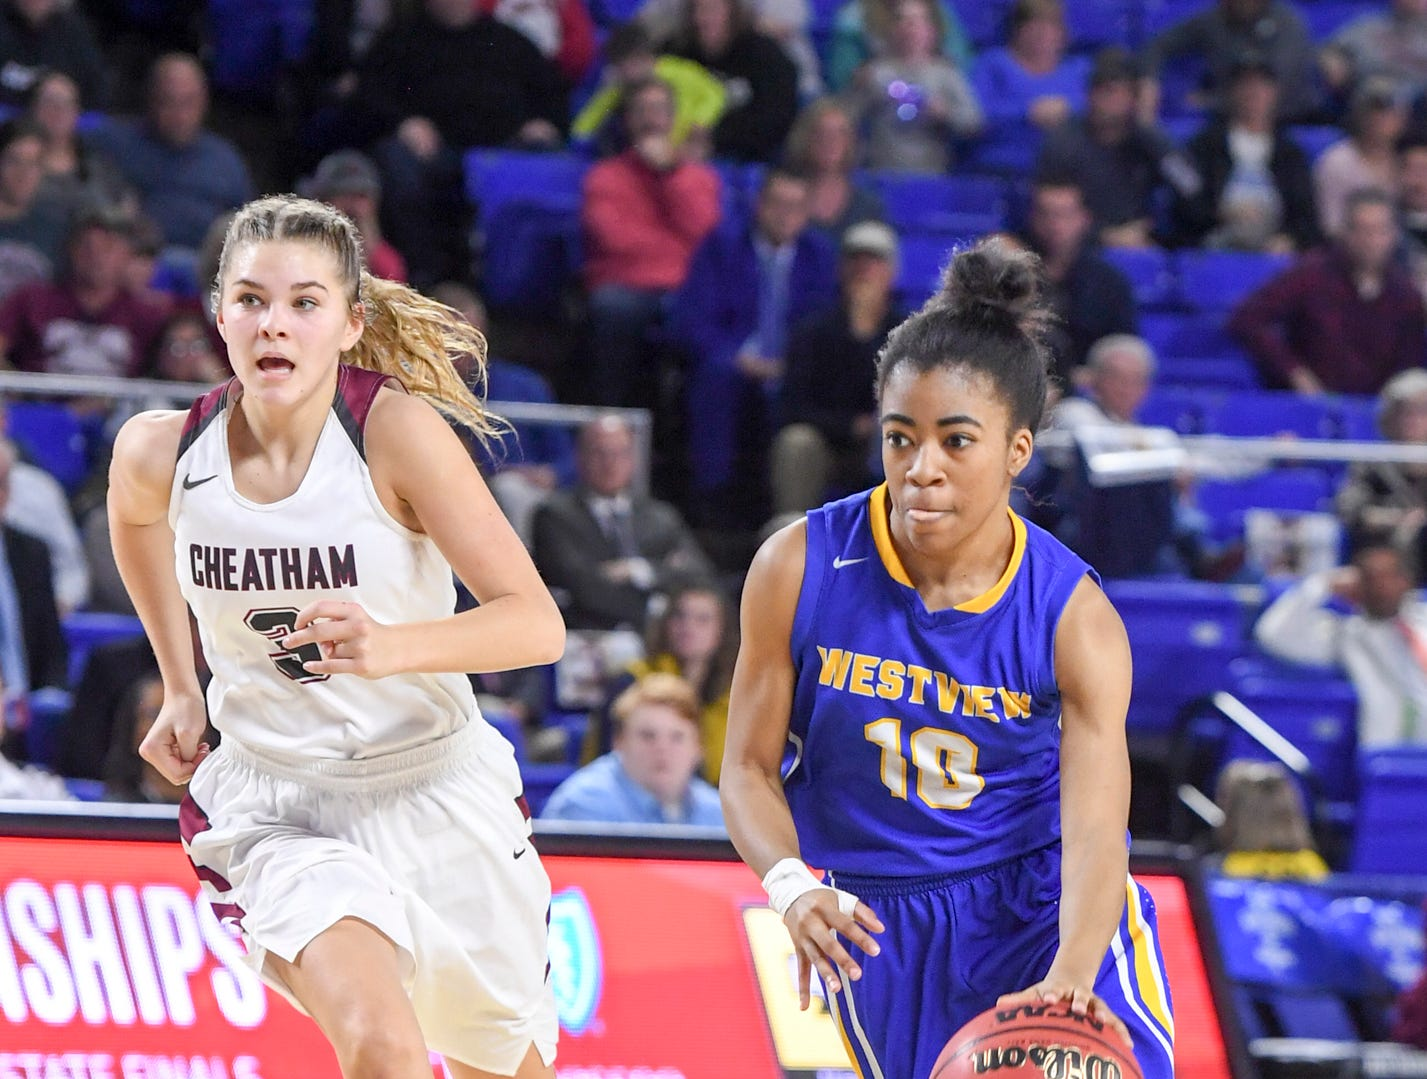 Westview's Zanasha Gadlen (10) dribbles to the paint during their Class AA championship game against Cheatham County, Saturday, March 9, 2019, in Murfreesboro. Westview fell to Cheatham County, 43-40.